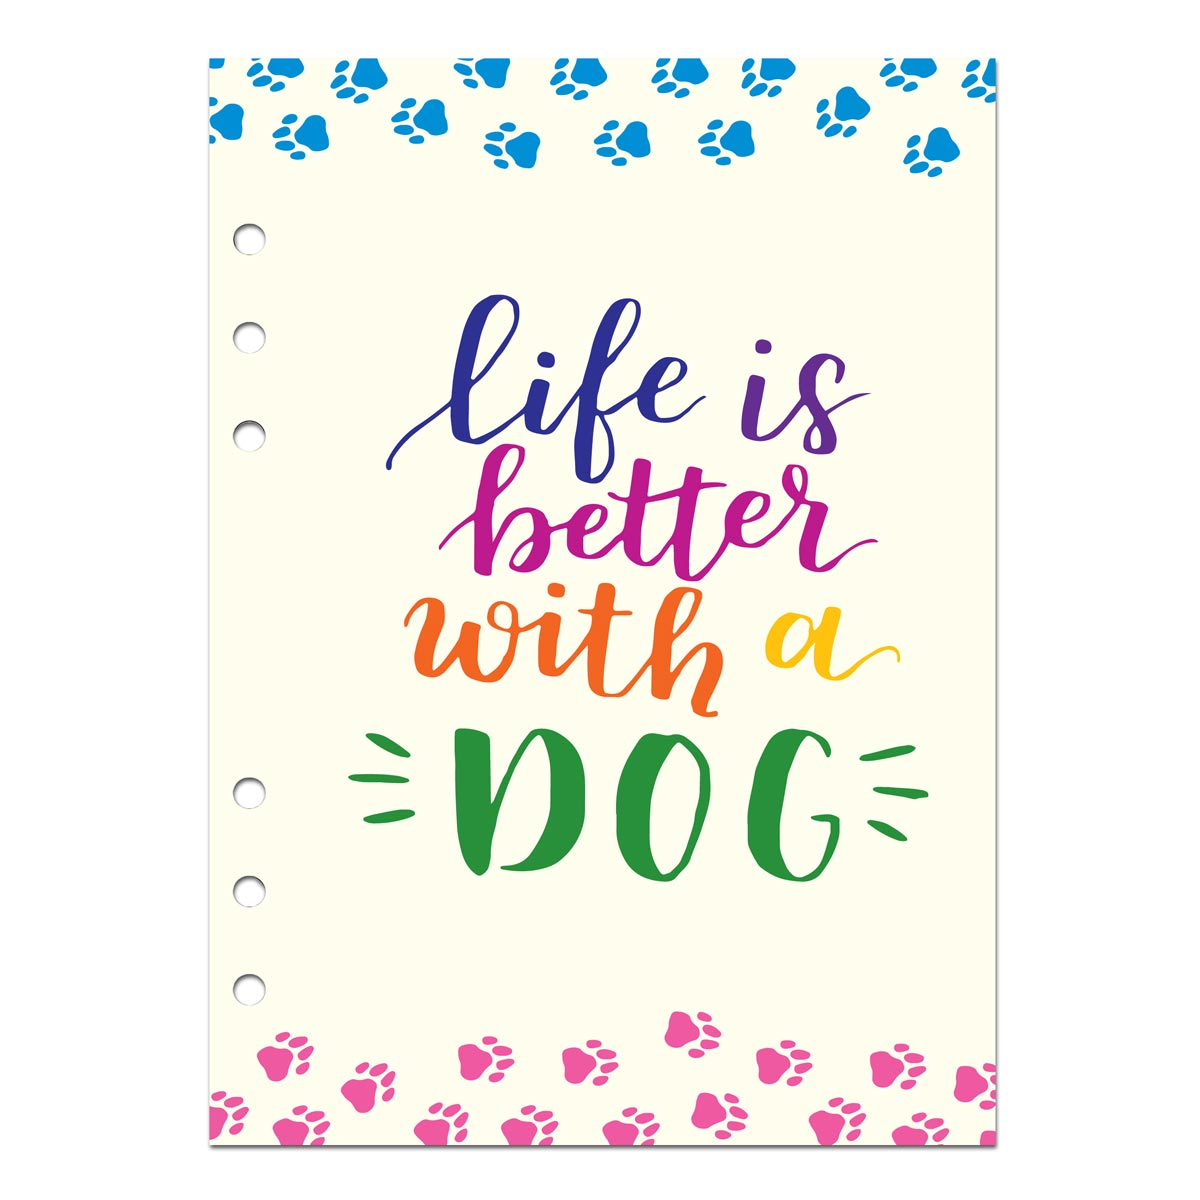 planner-dog-a5-paws-wklad-tytulowe